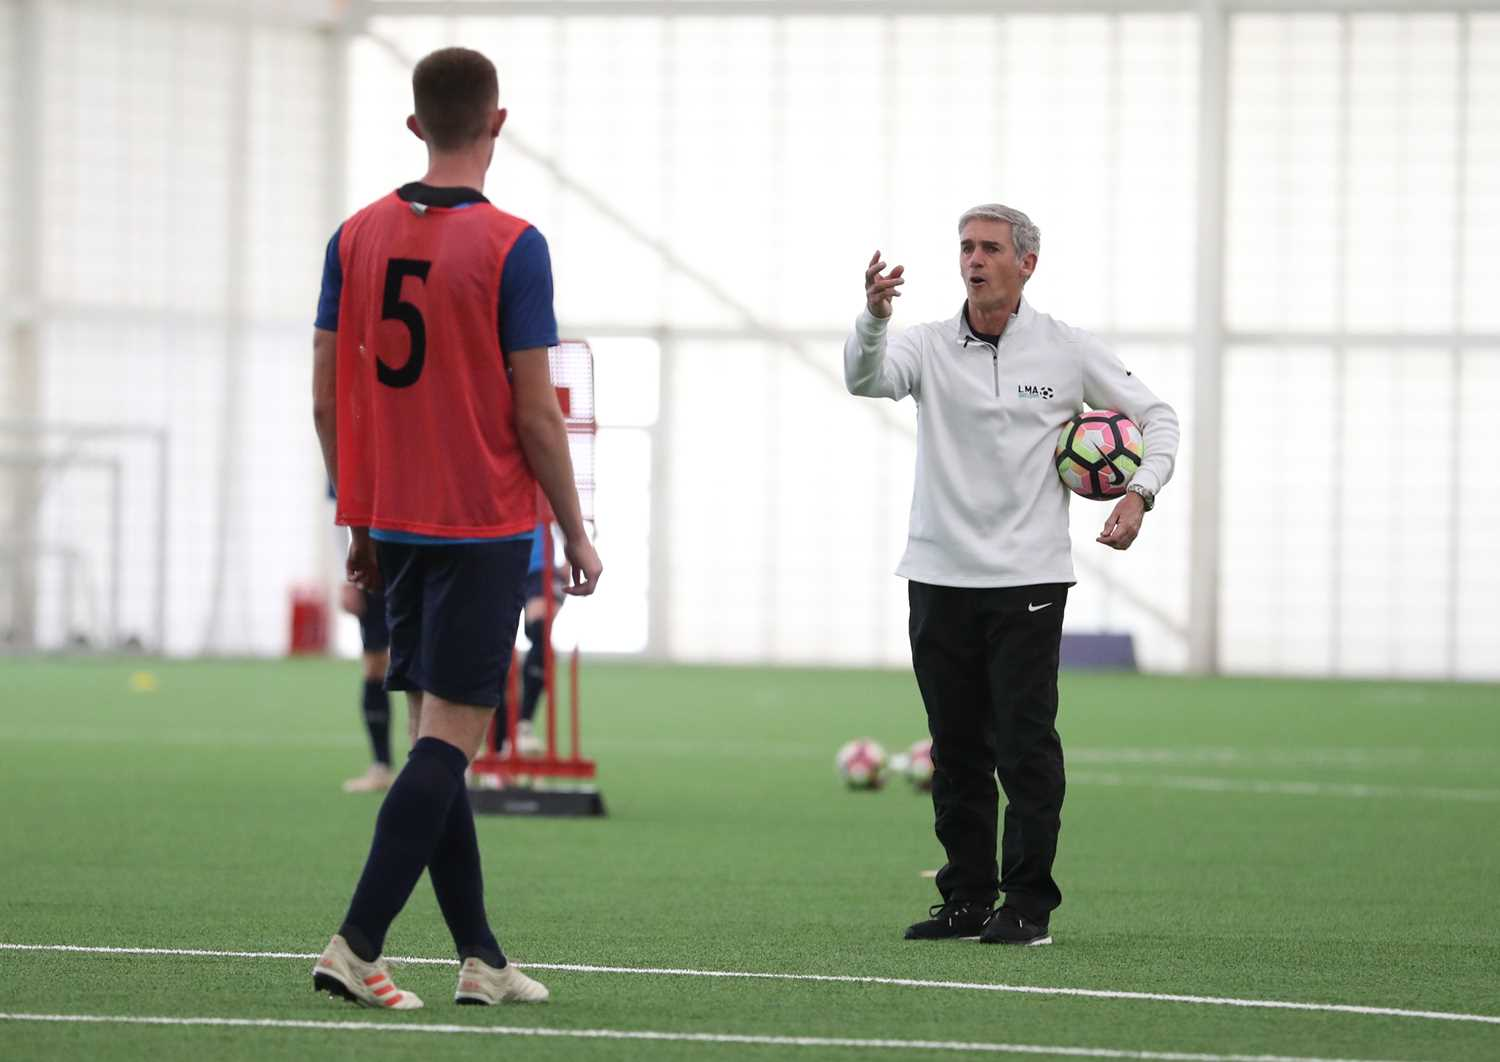 Exclusive Coaching Session with a League Managers Association Ambassador A chance for your